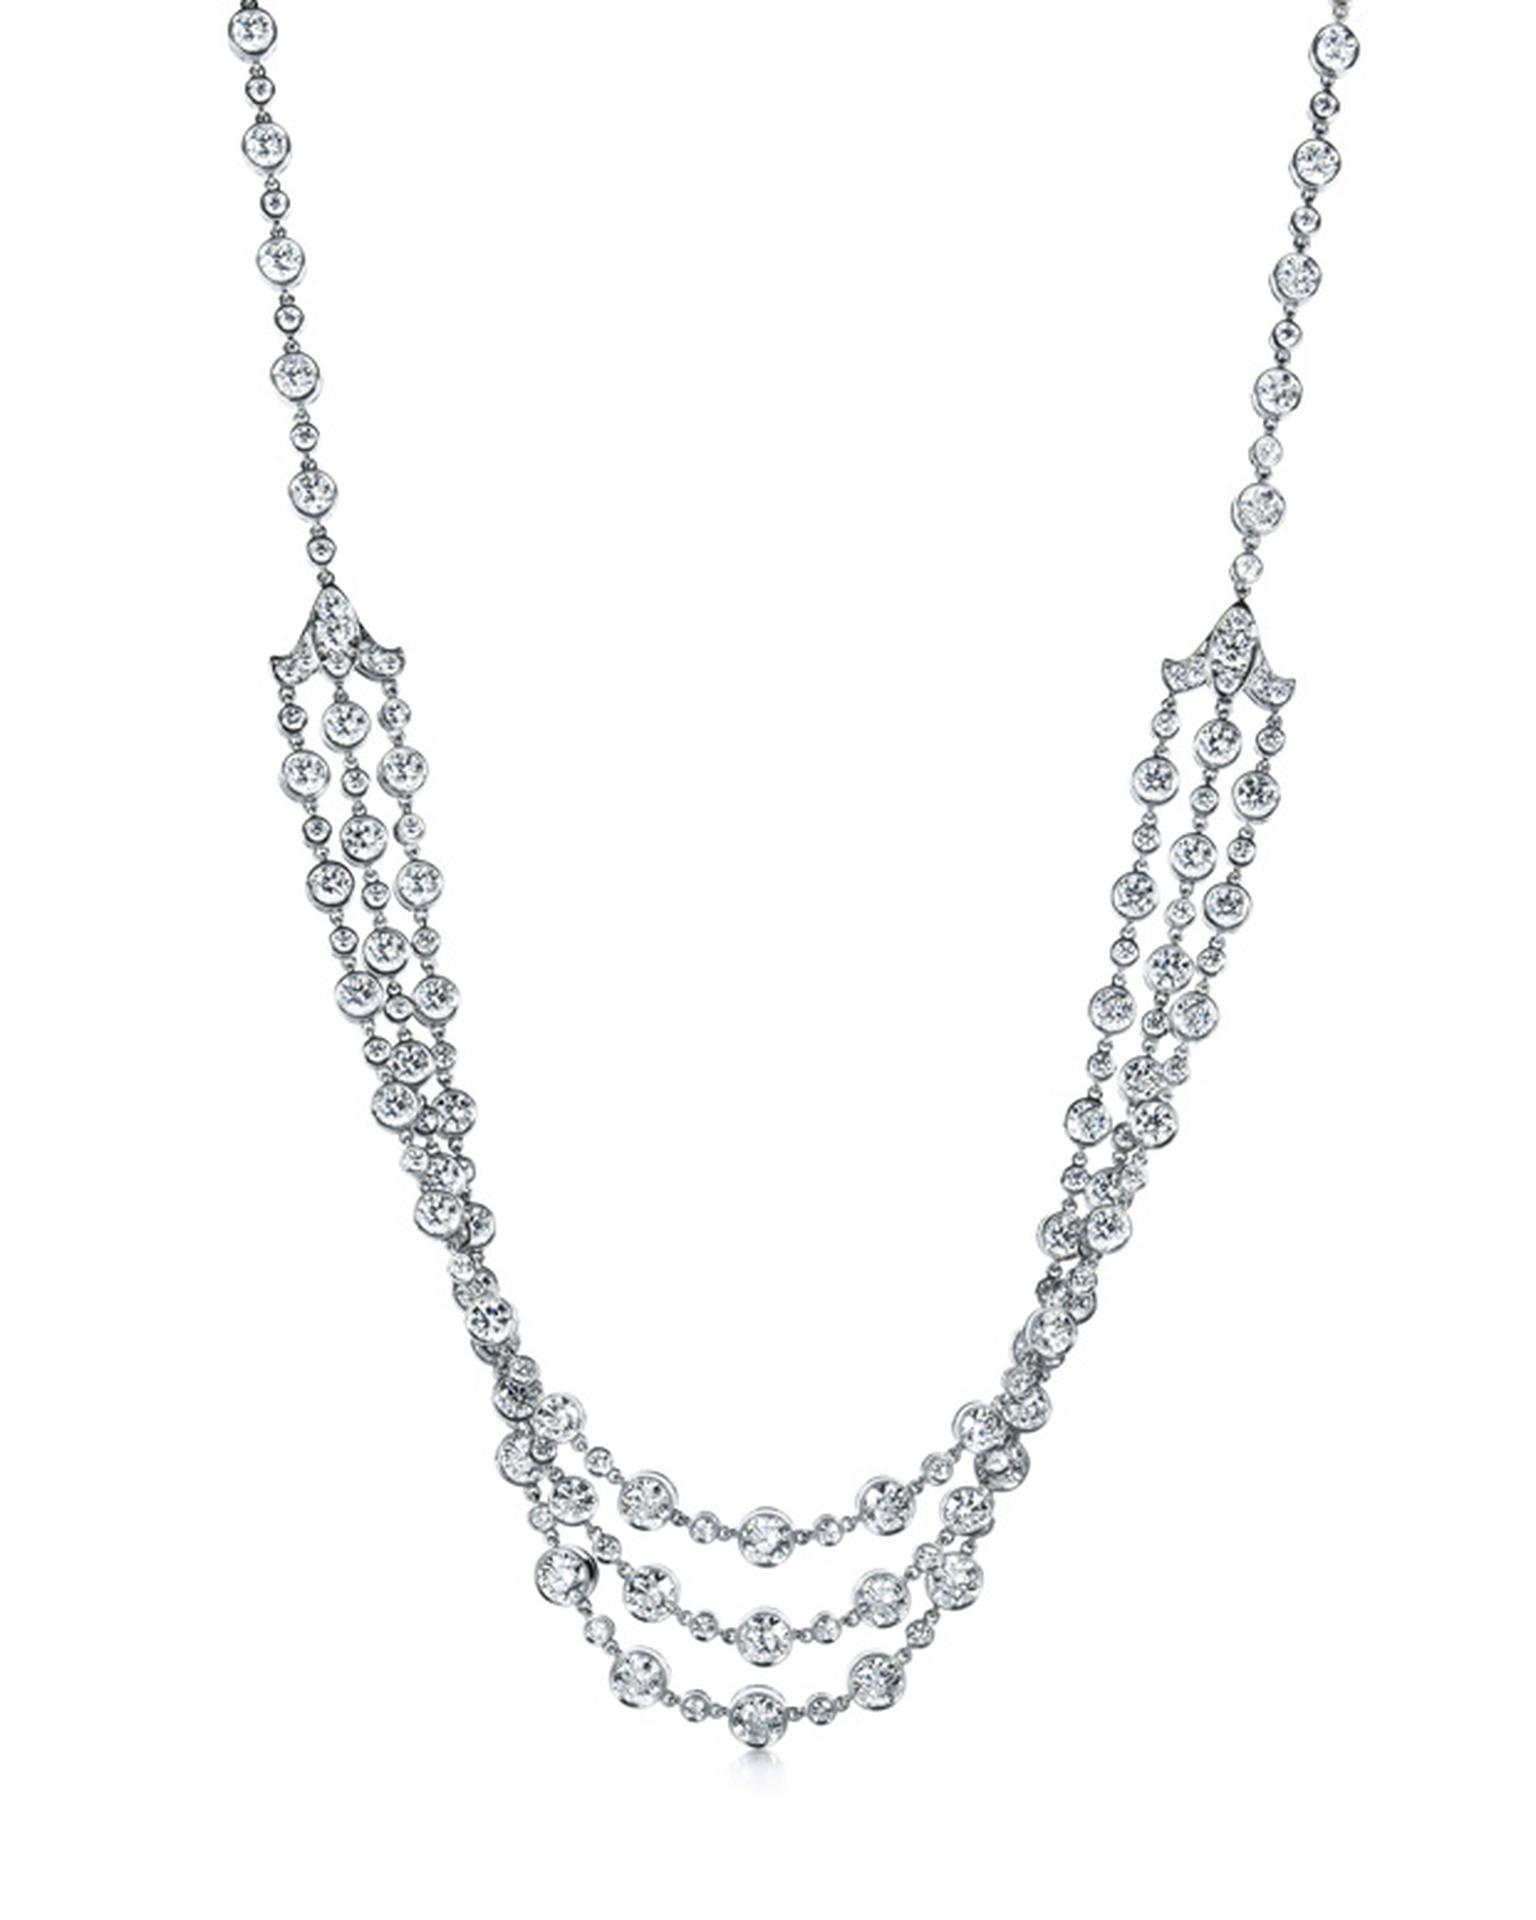 Tiffany & Co Fleur de Lys diamond necklace